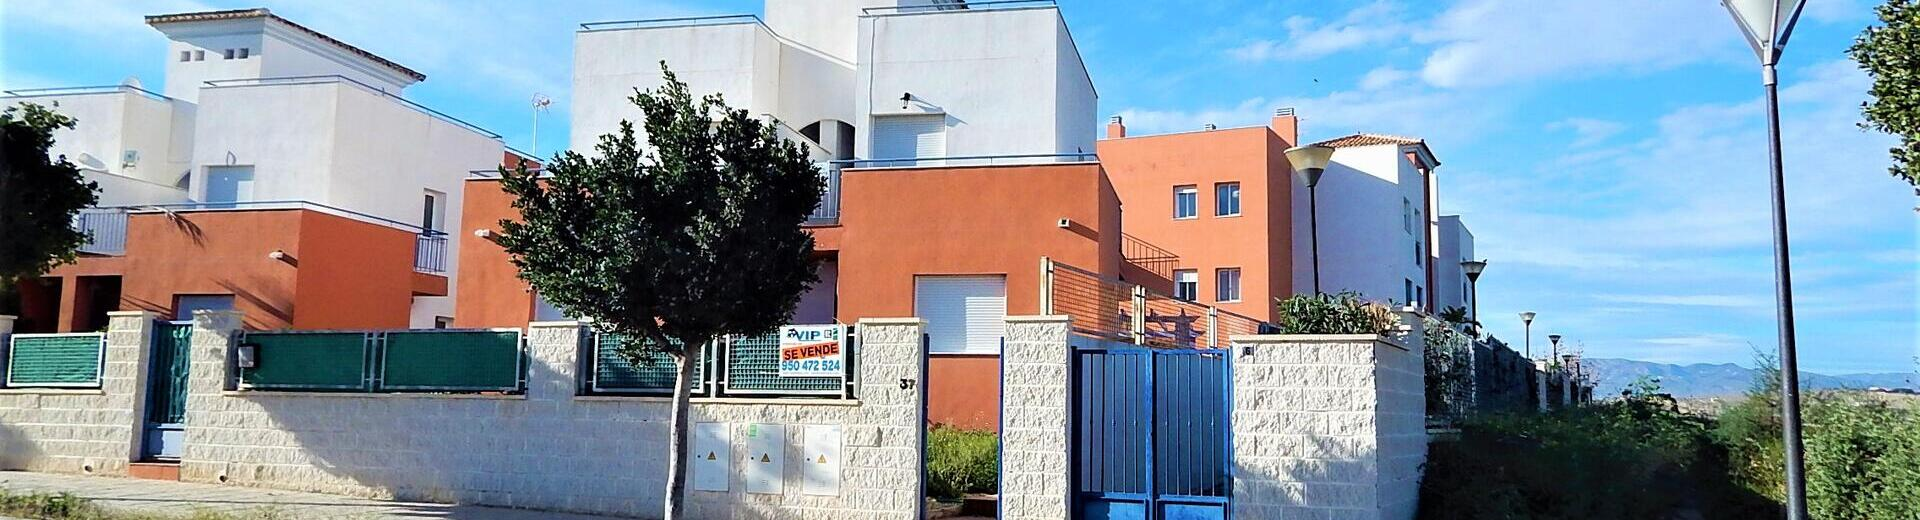 VIP7686: Townhouse for Sale